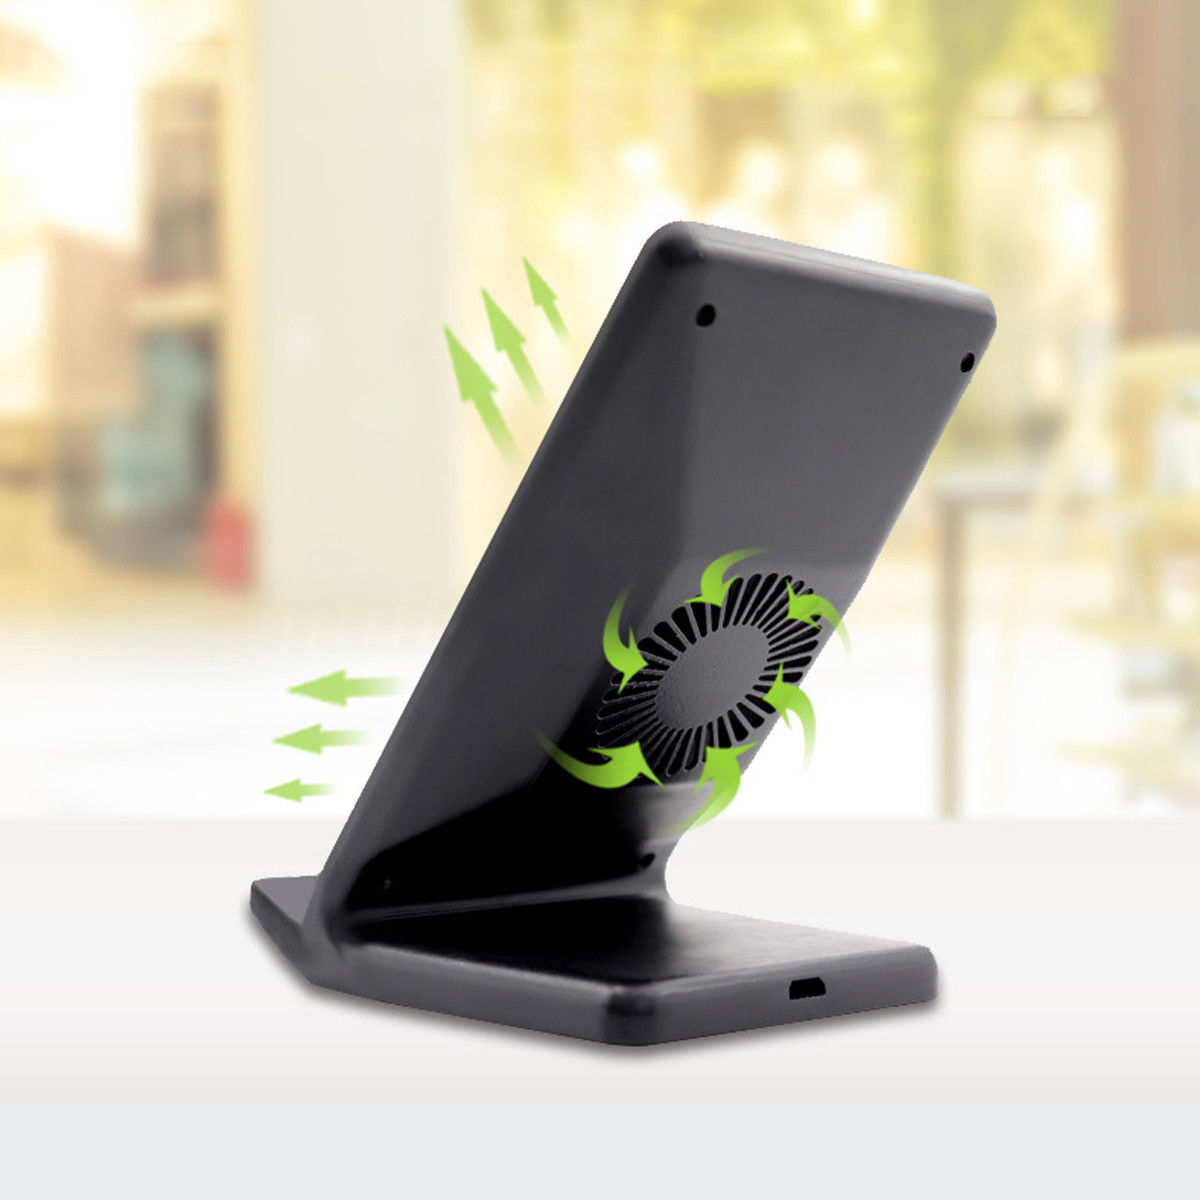 Details about Qi Wireless Charger Fast Charging Dock with Fan For Samsung  S9 S8 Edge Note9 AU